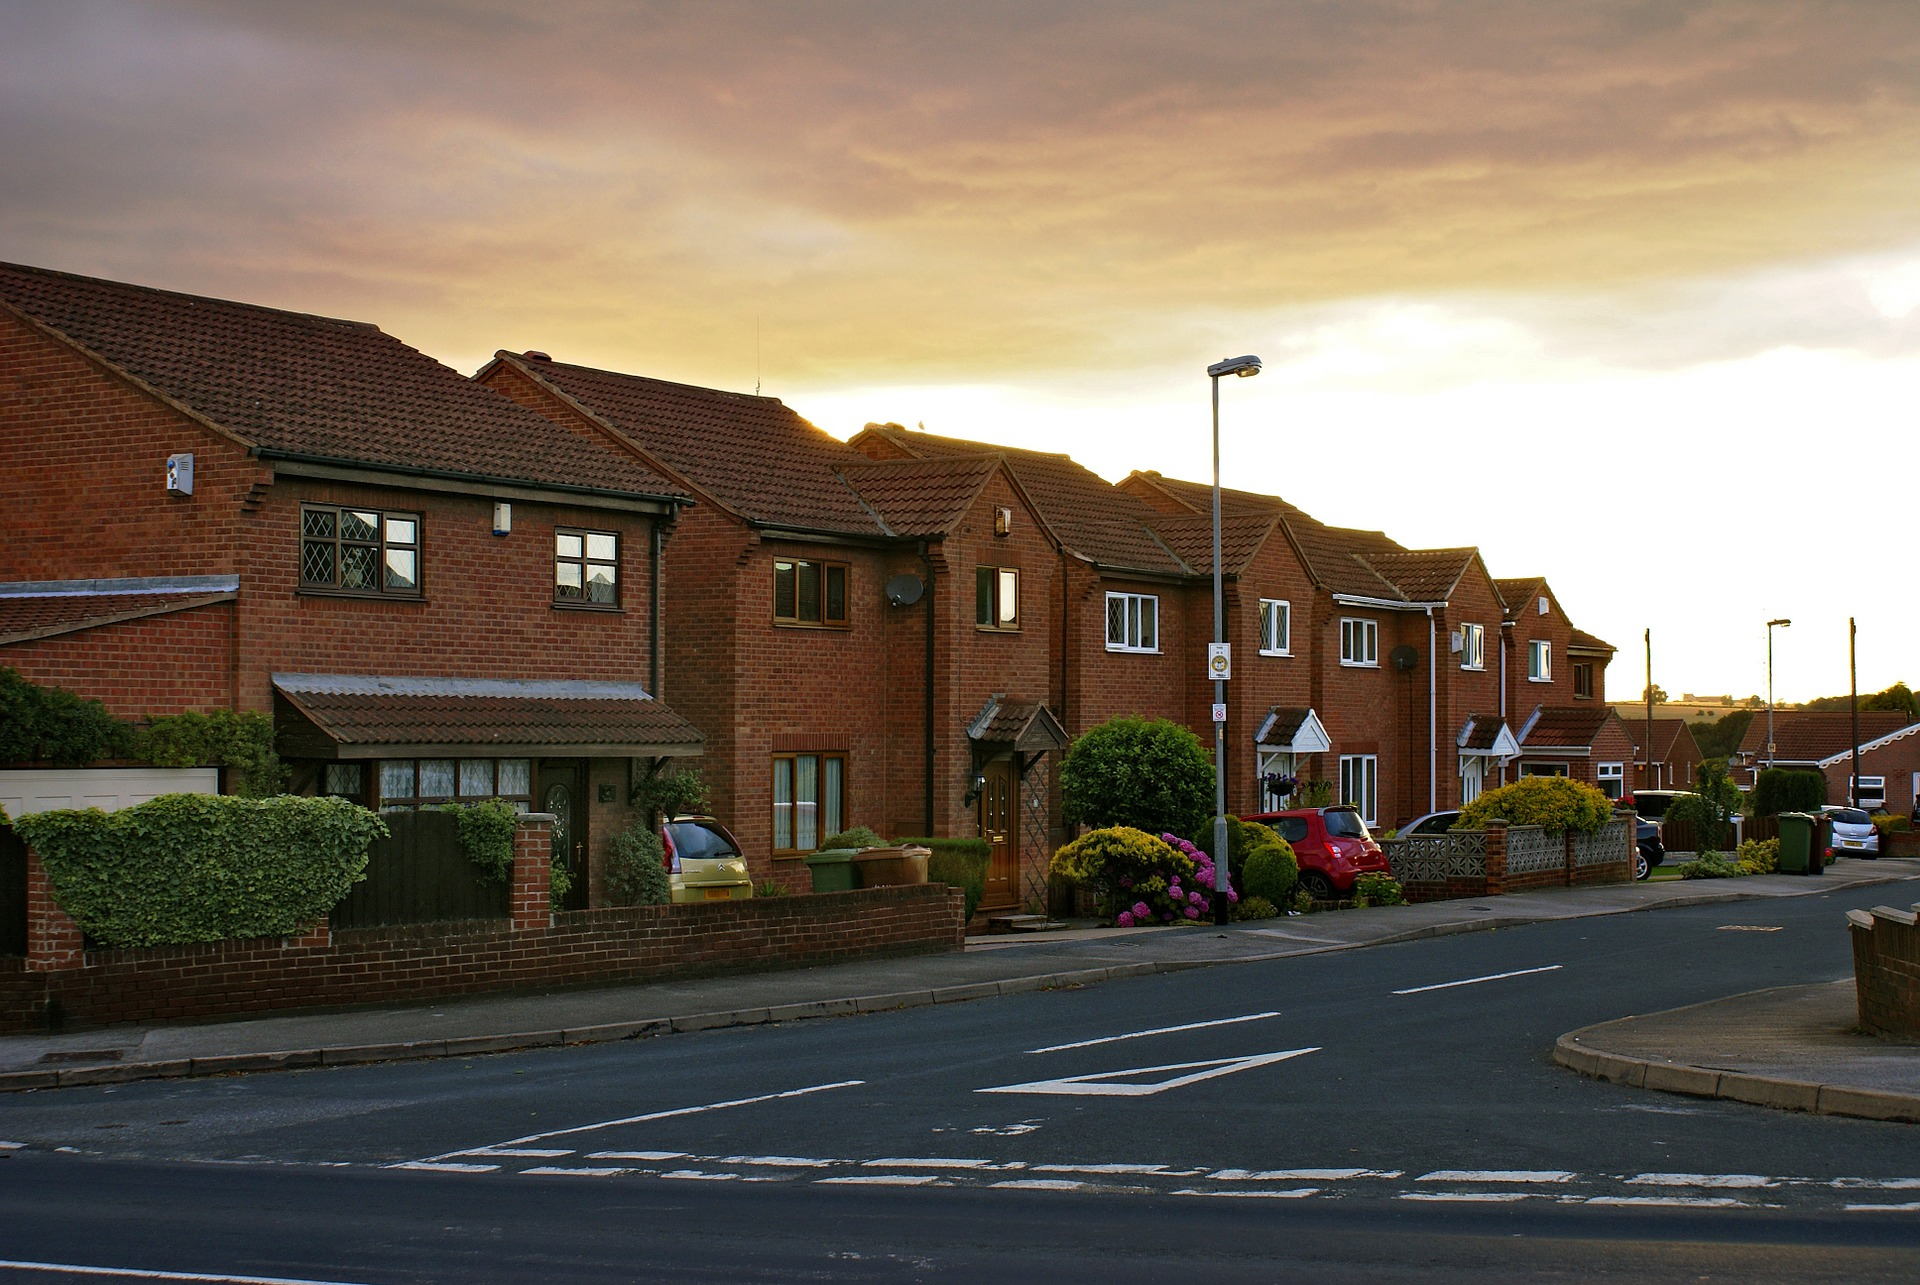 image of houses on a street